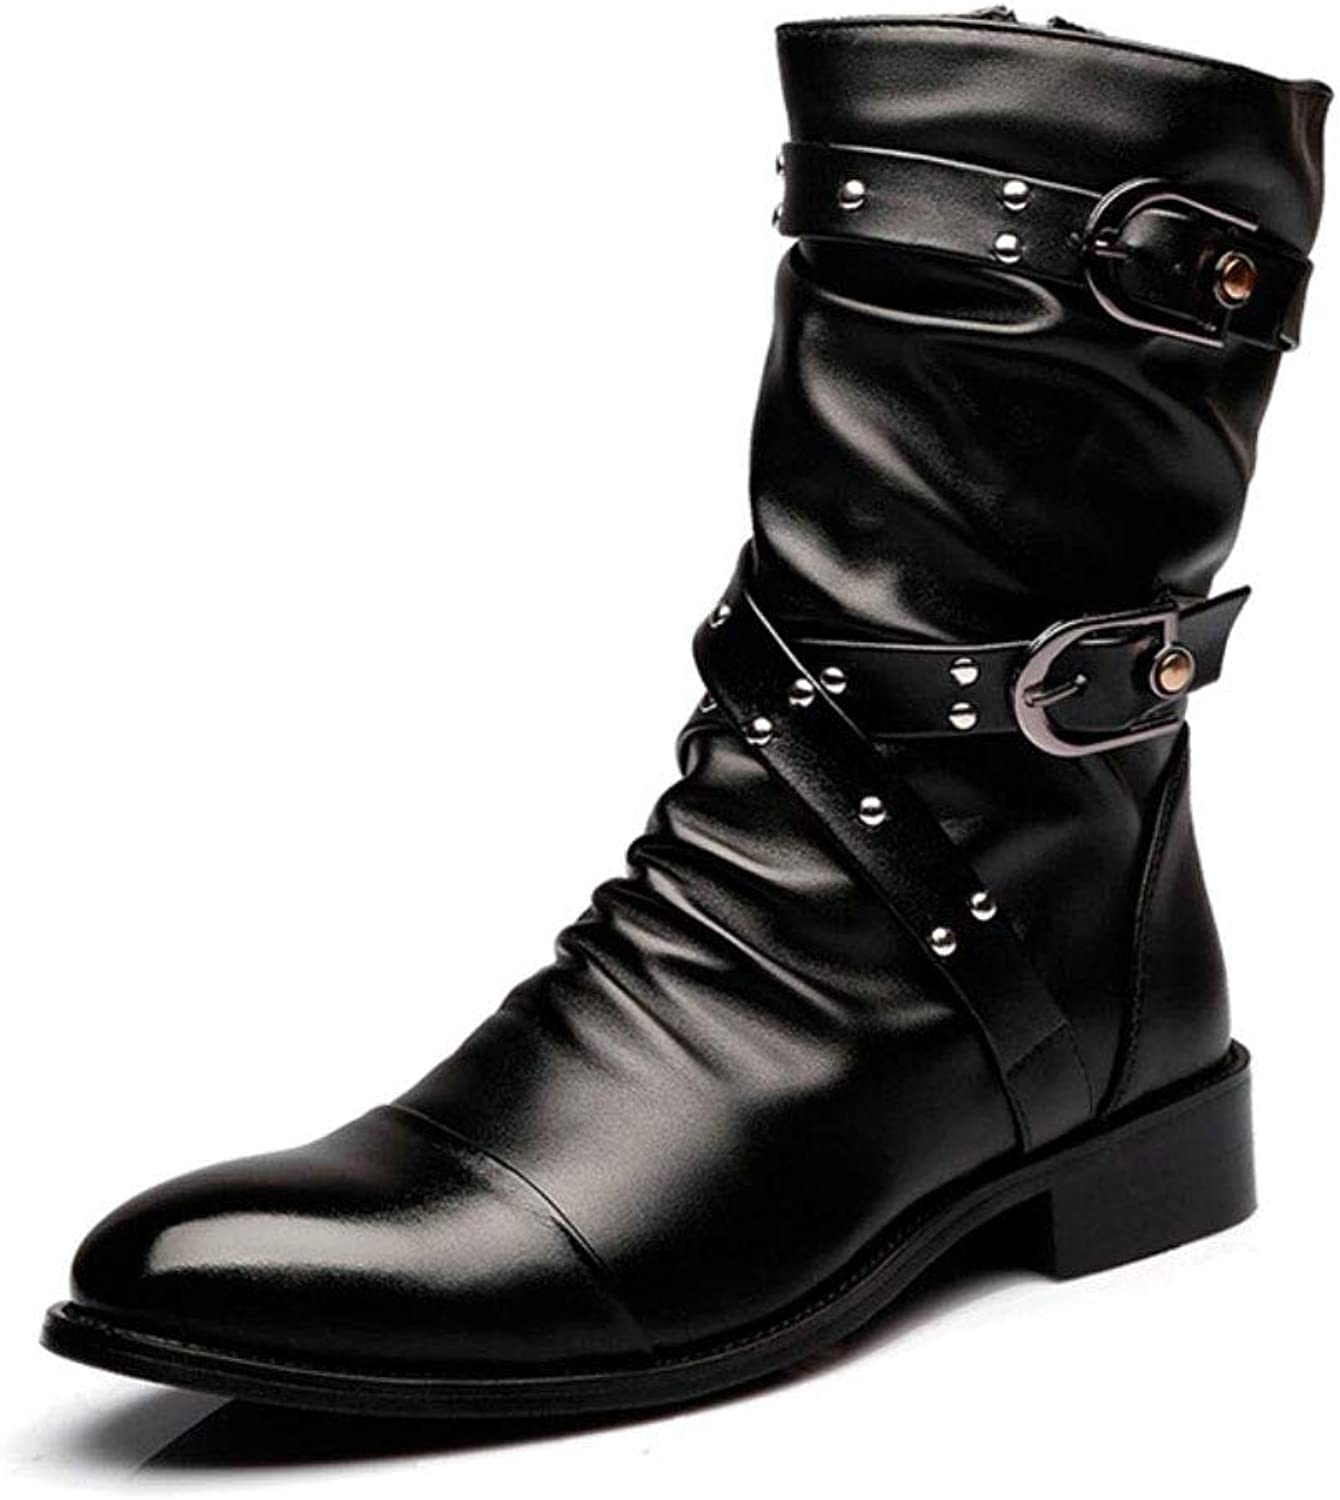 XUE Men's Leather Rivetboots Martin Boots Driving shoes Platform shoes Comfortable Sparkling Glitter Studded shoes personality   Party & Evening Night Club Stage